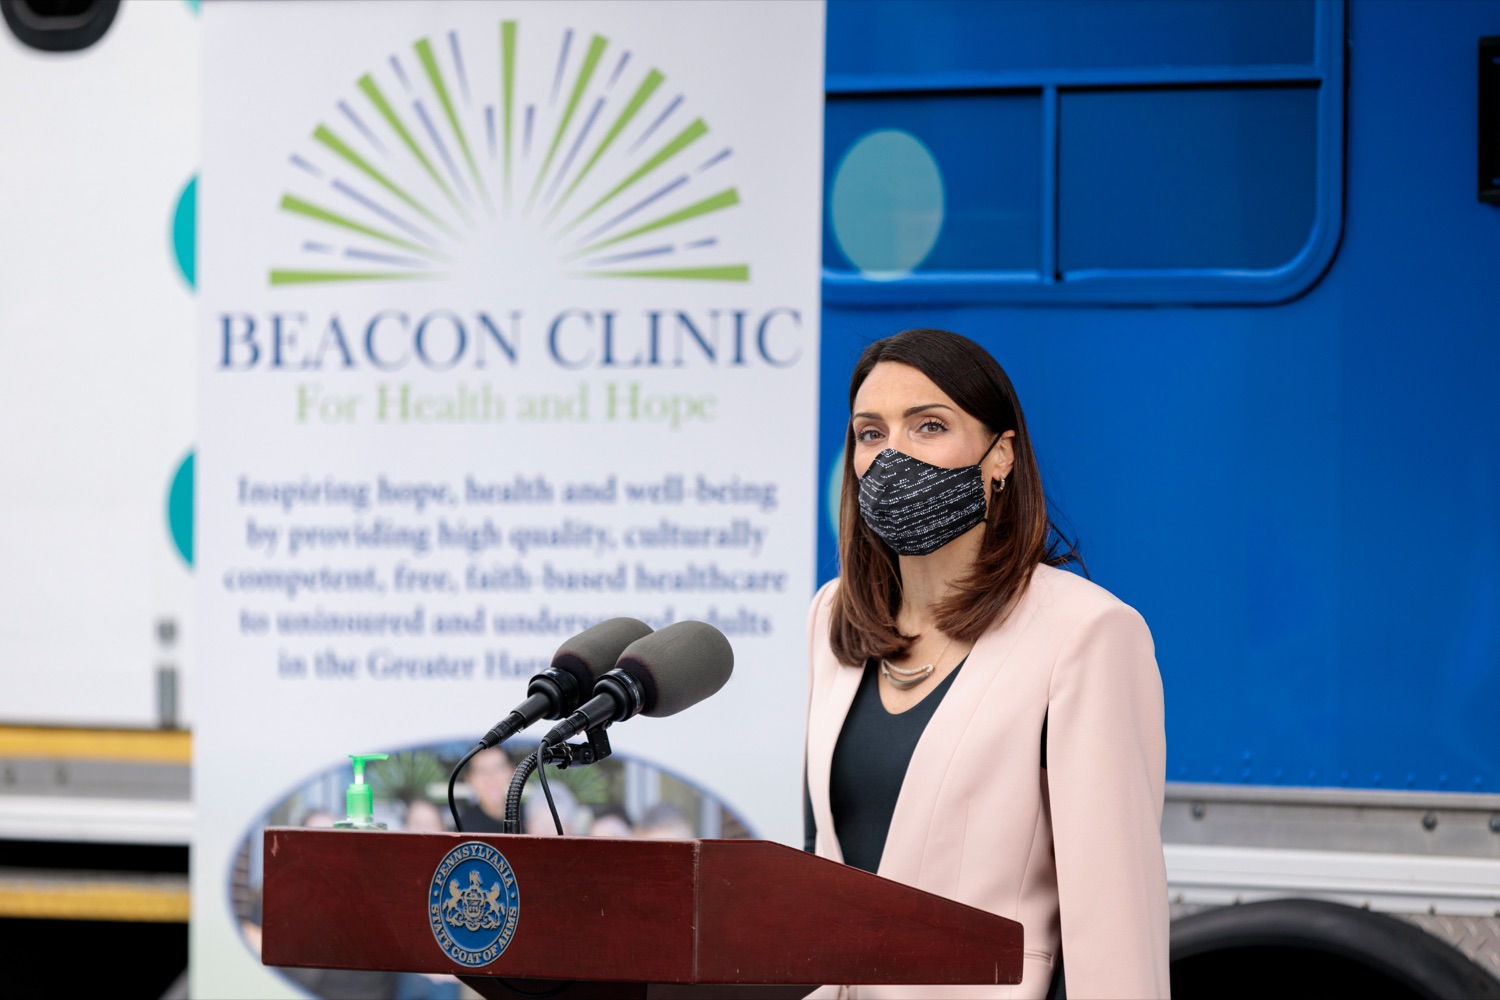 """<a href=""""https://filesource.wostreaming.net/commonwealthofpa/photo/18675_DOH_Beacon_Clinic_NK_001.jpg"""" target=""""_blank"""">⇣Download Photo<br></a>PA Department of Health Acting Secretary Alison Beam speaks during a press conference, which discussed an upcoming COVID-19 mobile response vaccination tour to provide vaccinations and education to minority and underserved communities across the commonwealth, outside of Beacon Clinic in Harrisburg on Monday, April 12, 2021."""